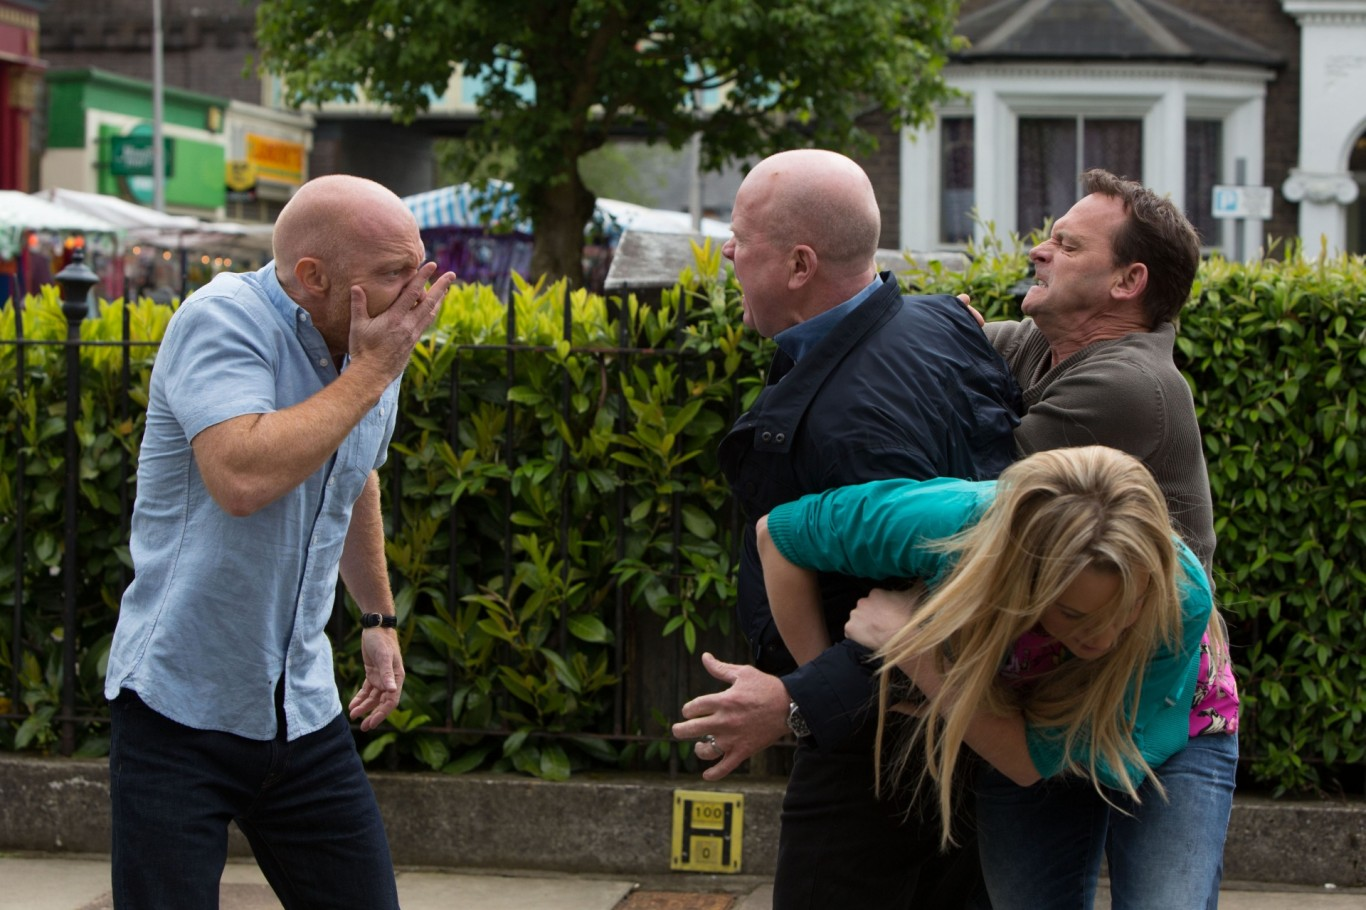 Max Branning gets a punch in the face from Phil Mitchell in EastEnders